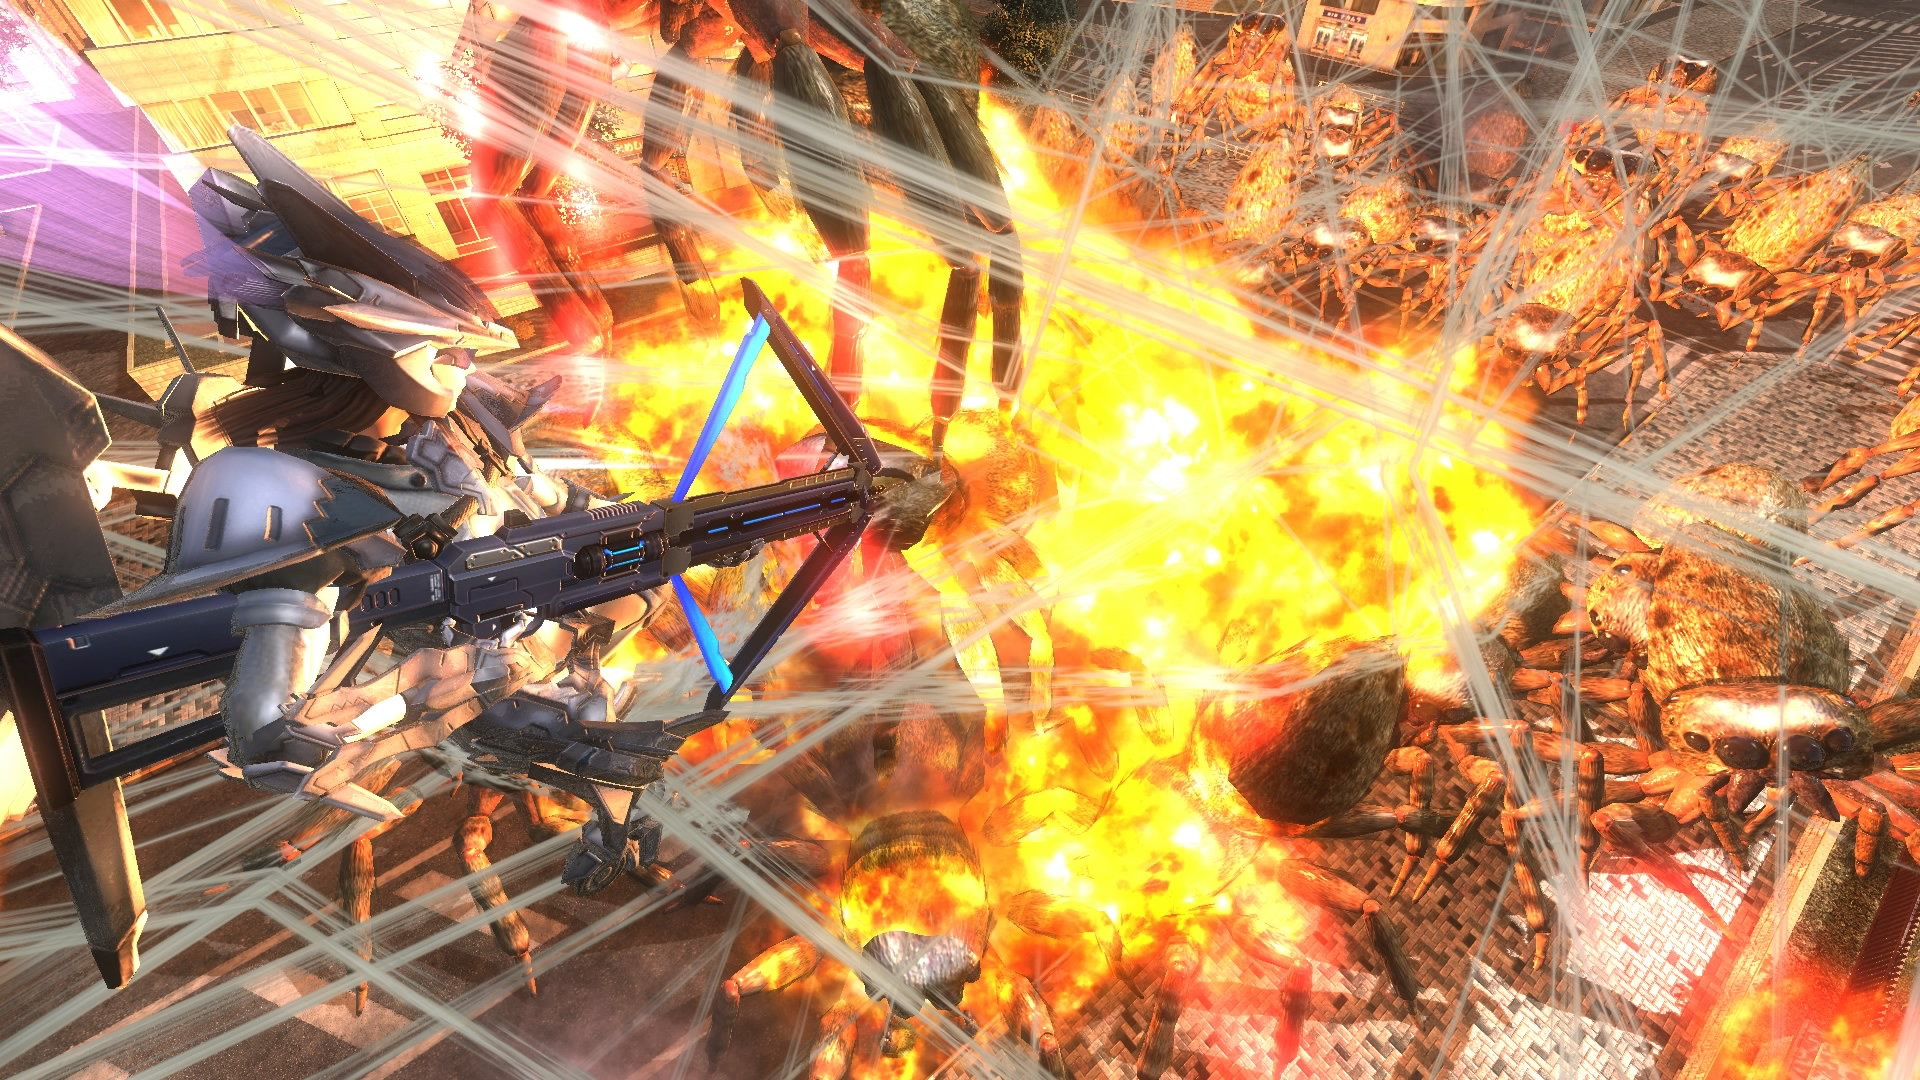 EARTH DEFENSE FORCE 4.1 The Shadow of New Despair Screenshot 3